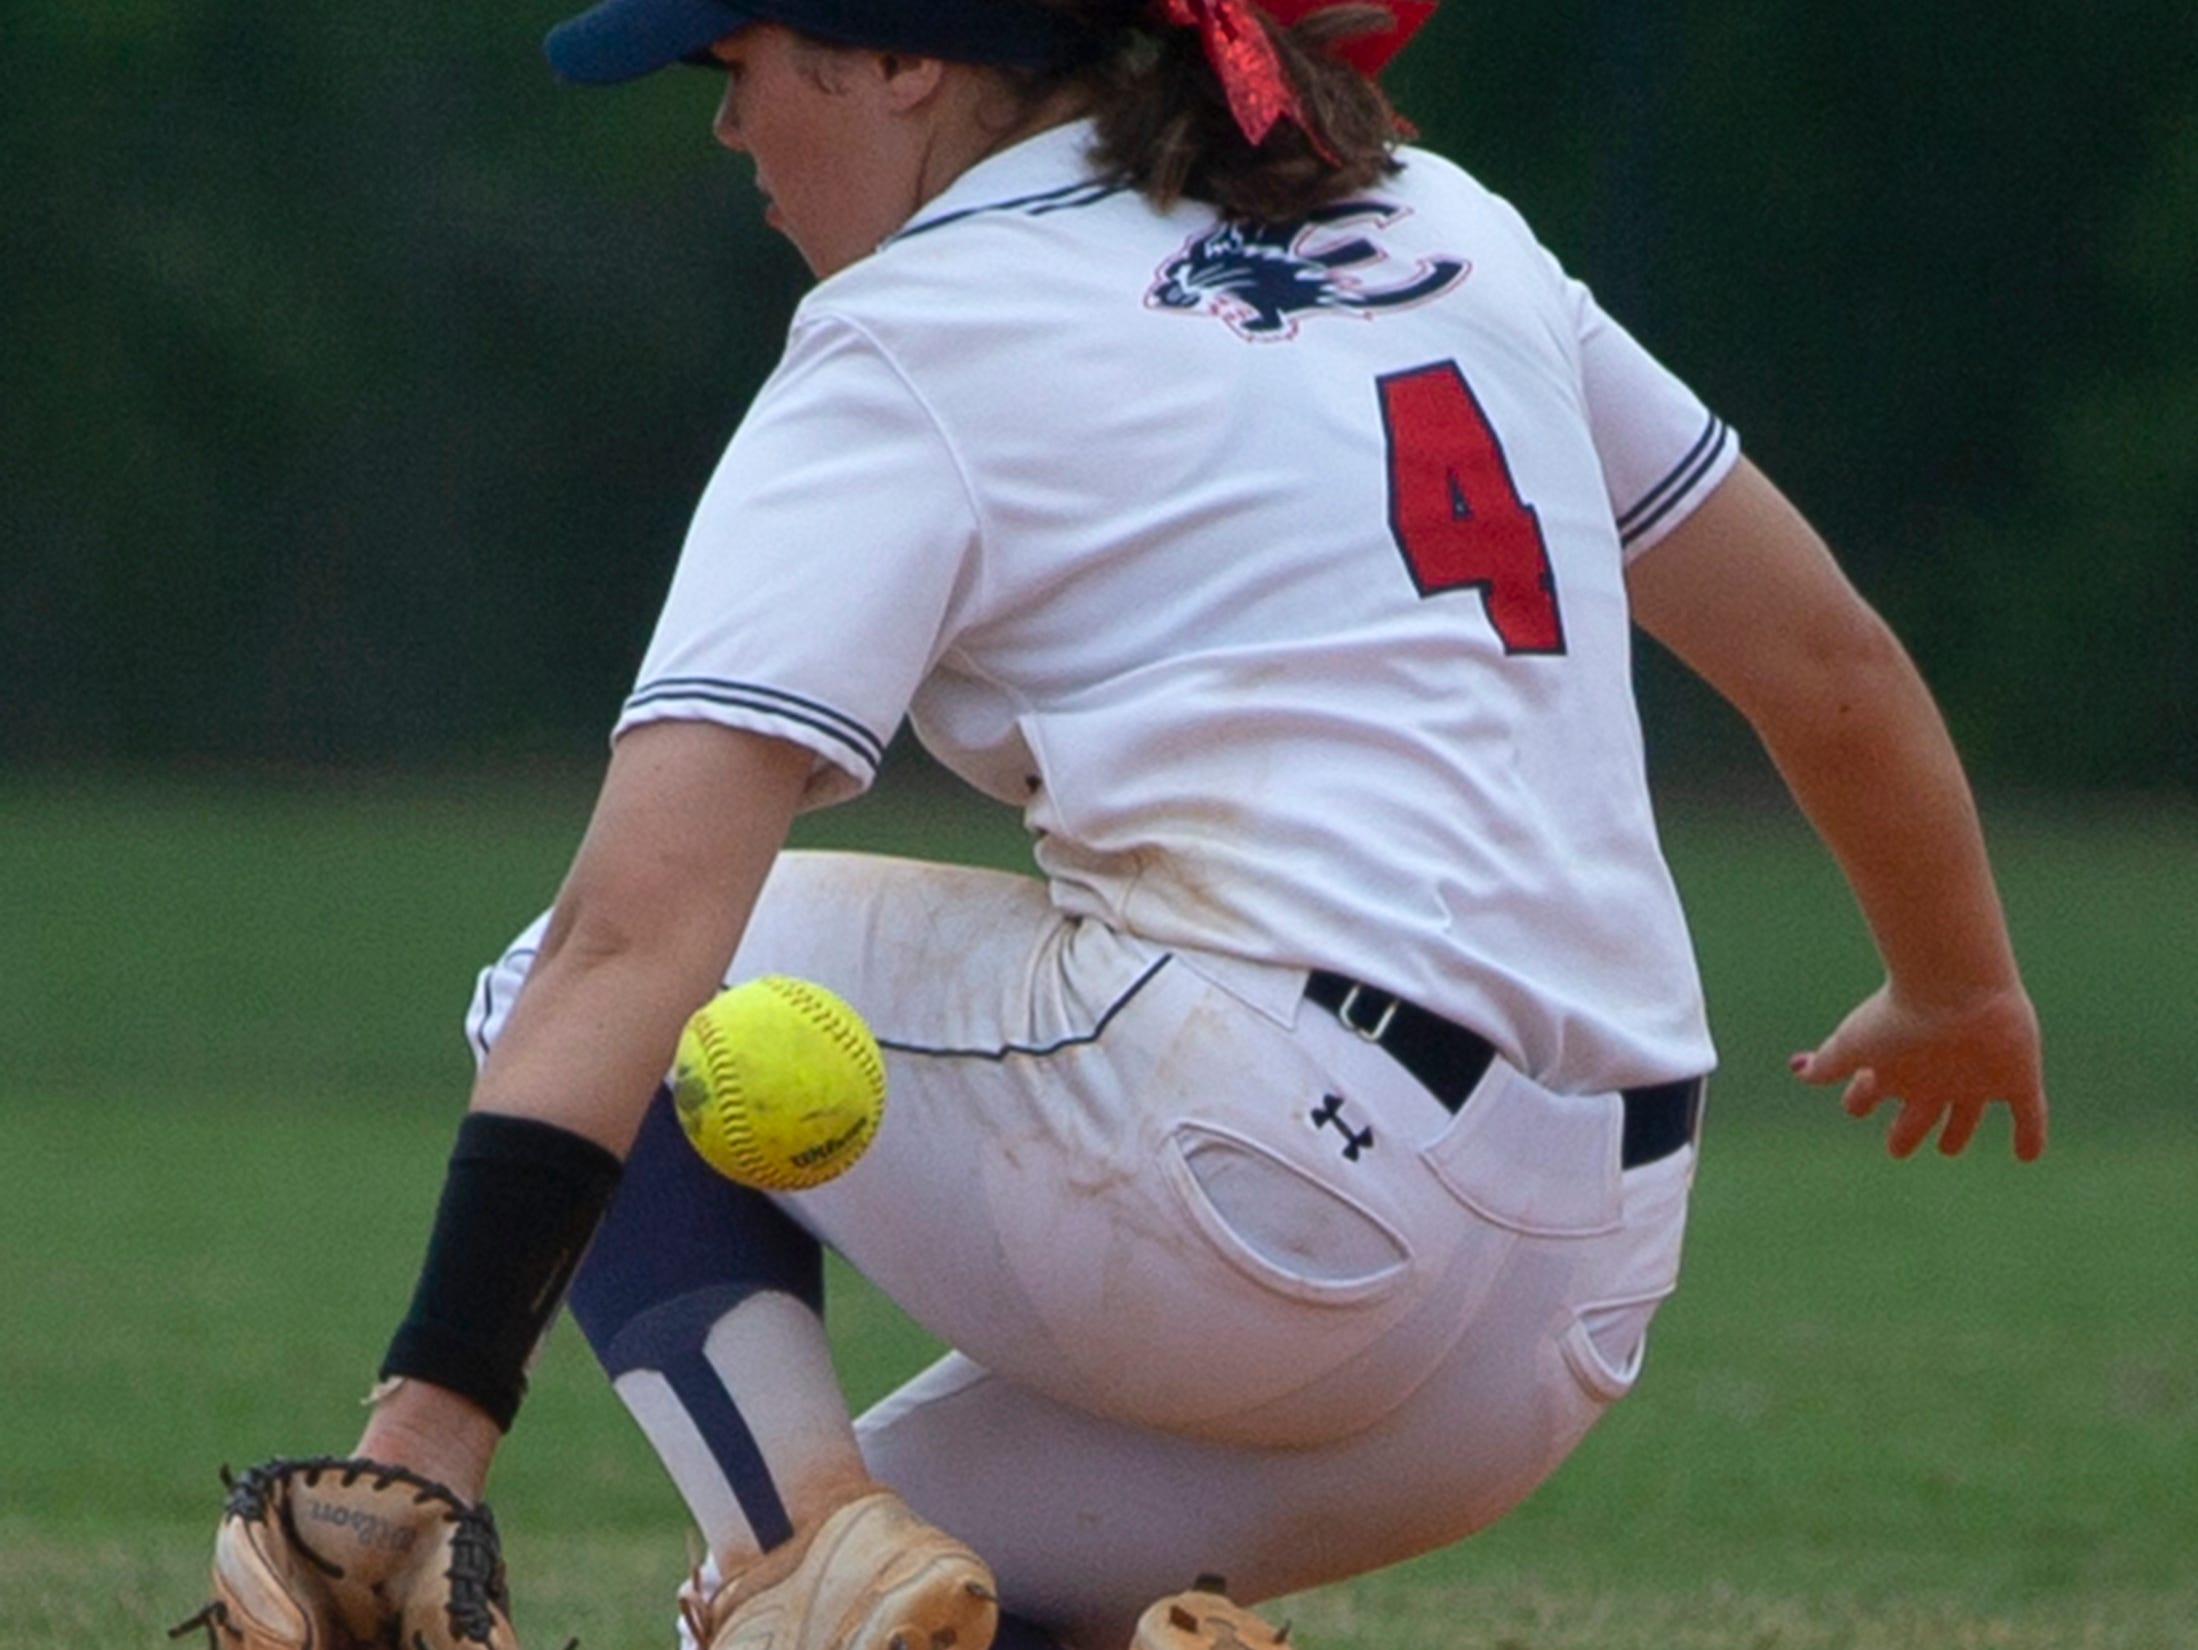 Estero's Anna Raybuck fields the ball against Doral Academy during the third place game at the Longshore Memorial softball tournament, Saturday, April 13, 2019, at North Collier Regional Park in North Naples.